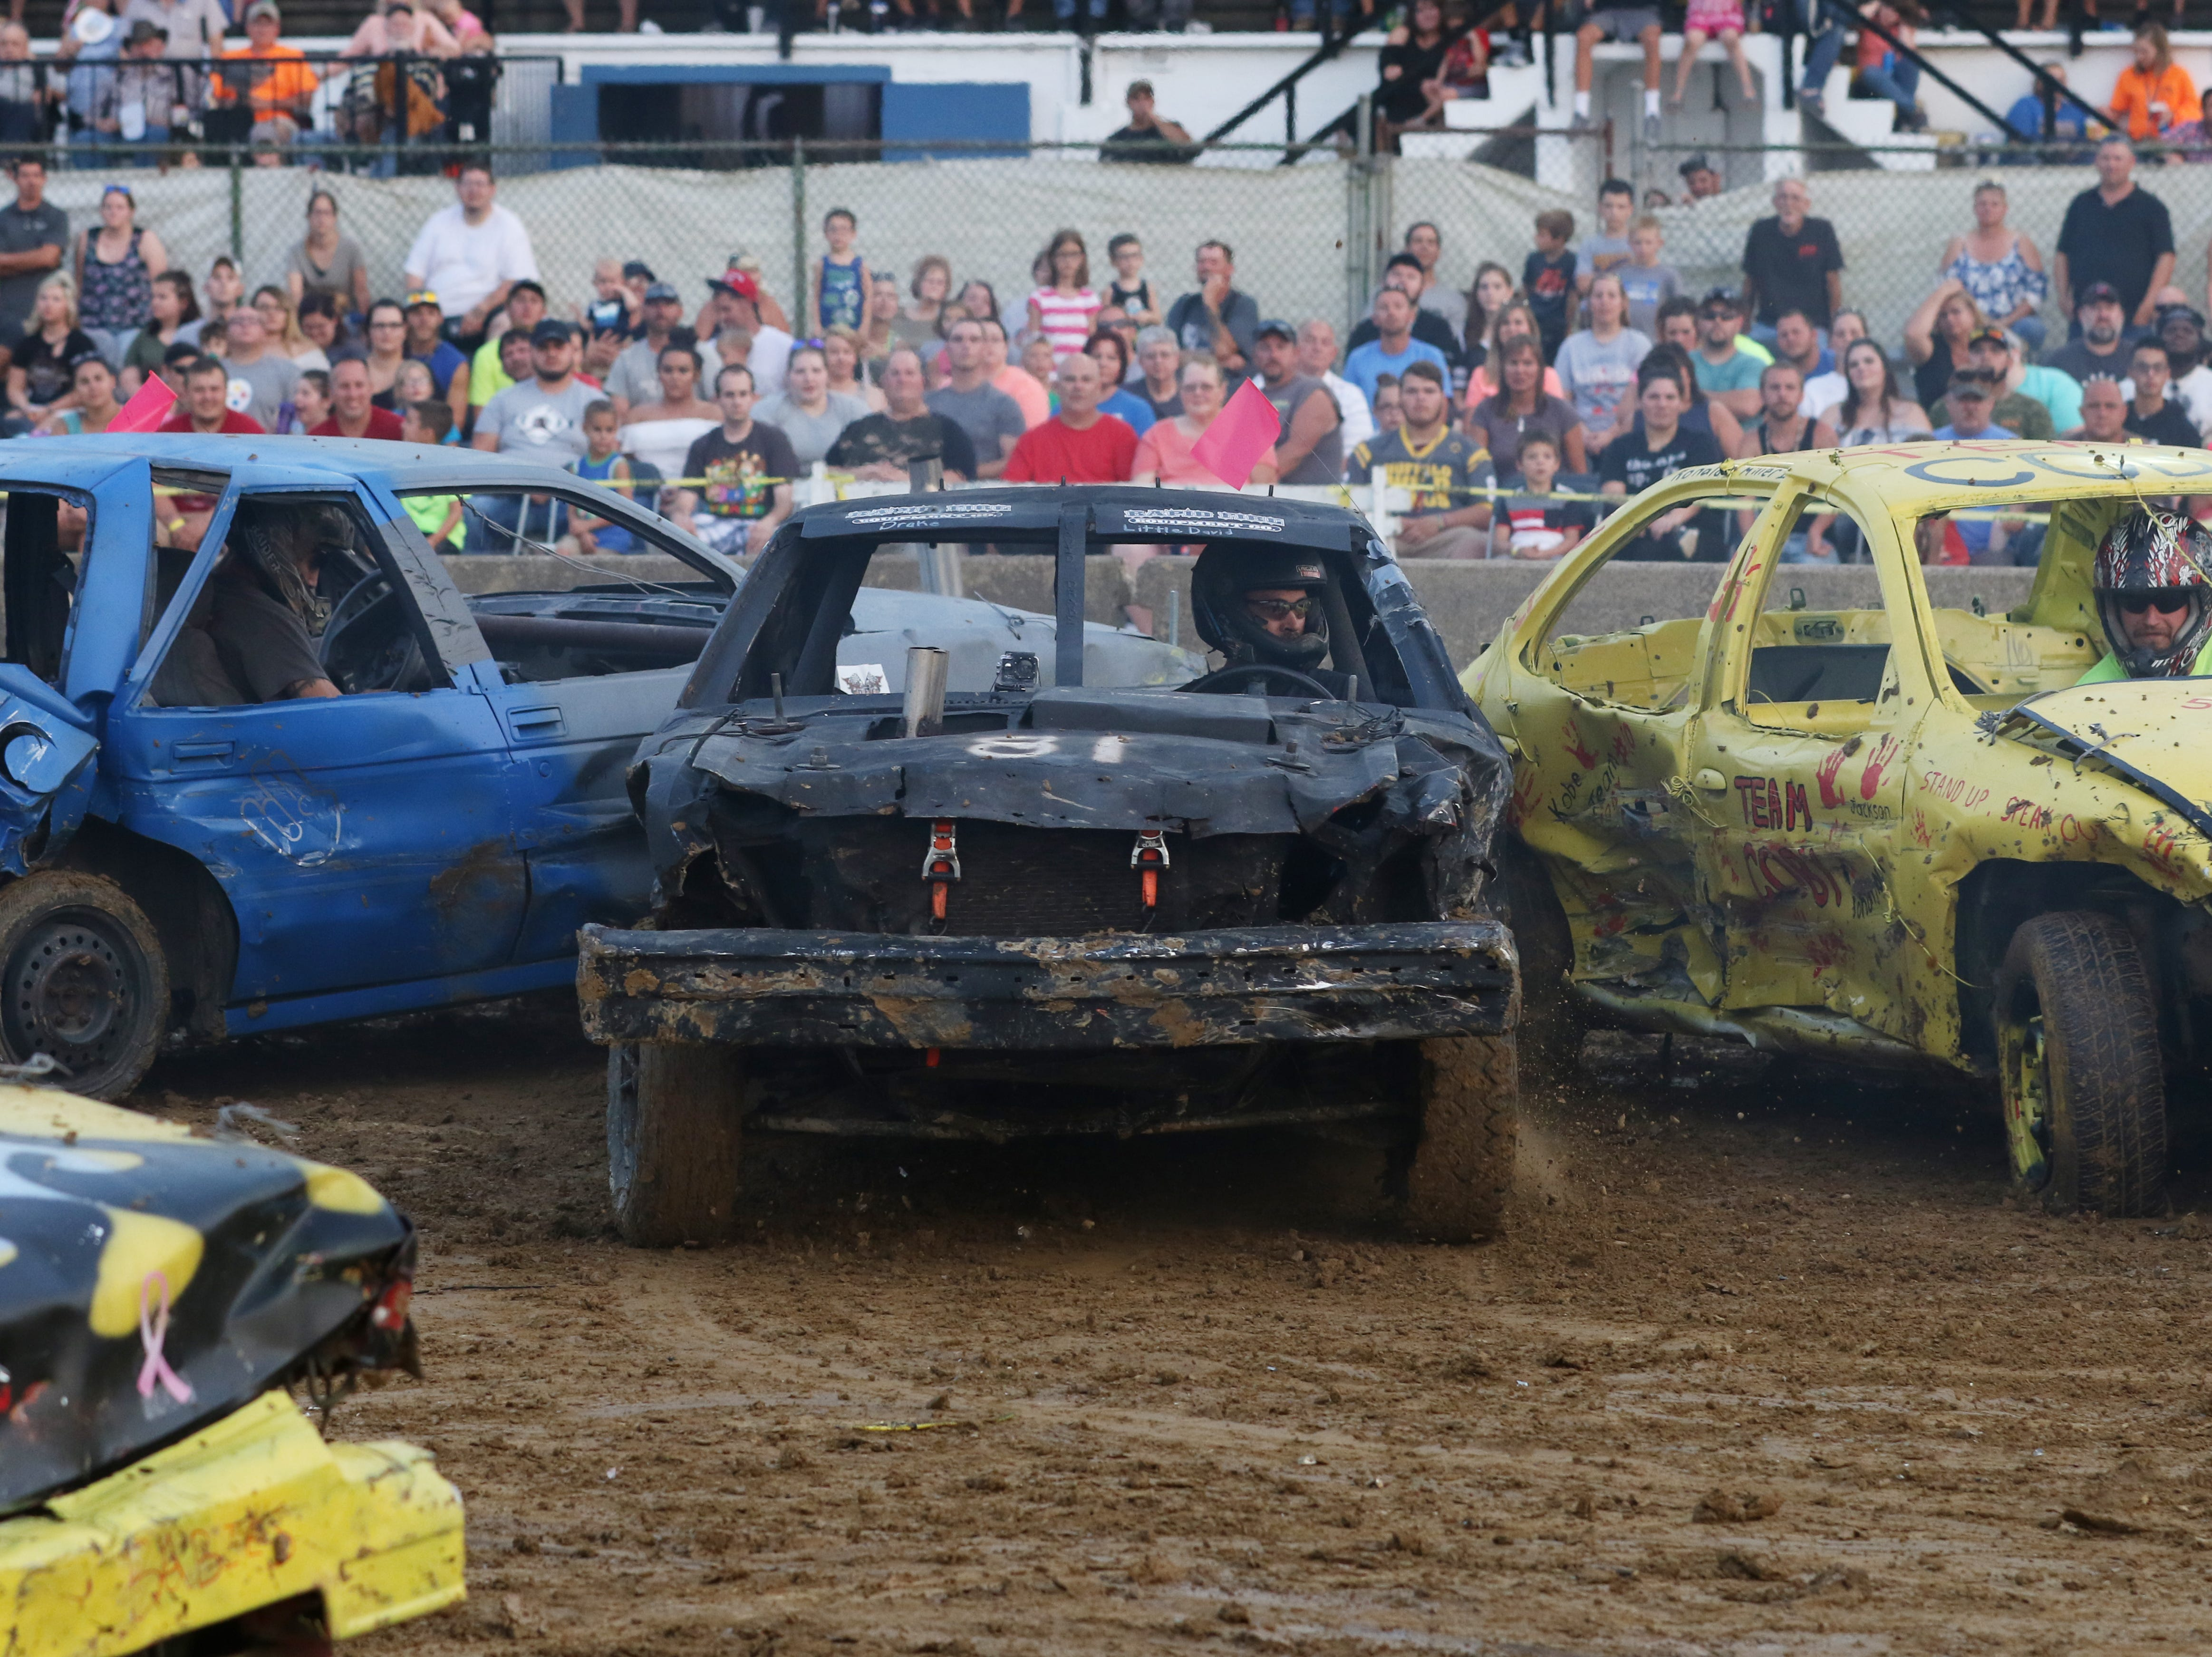 Dusty Dady finds himself between two cars during the Sarge and Sons Demolition Derby at the Muskingum County Fair on Tuesday.